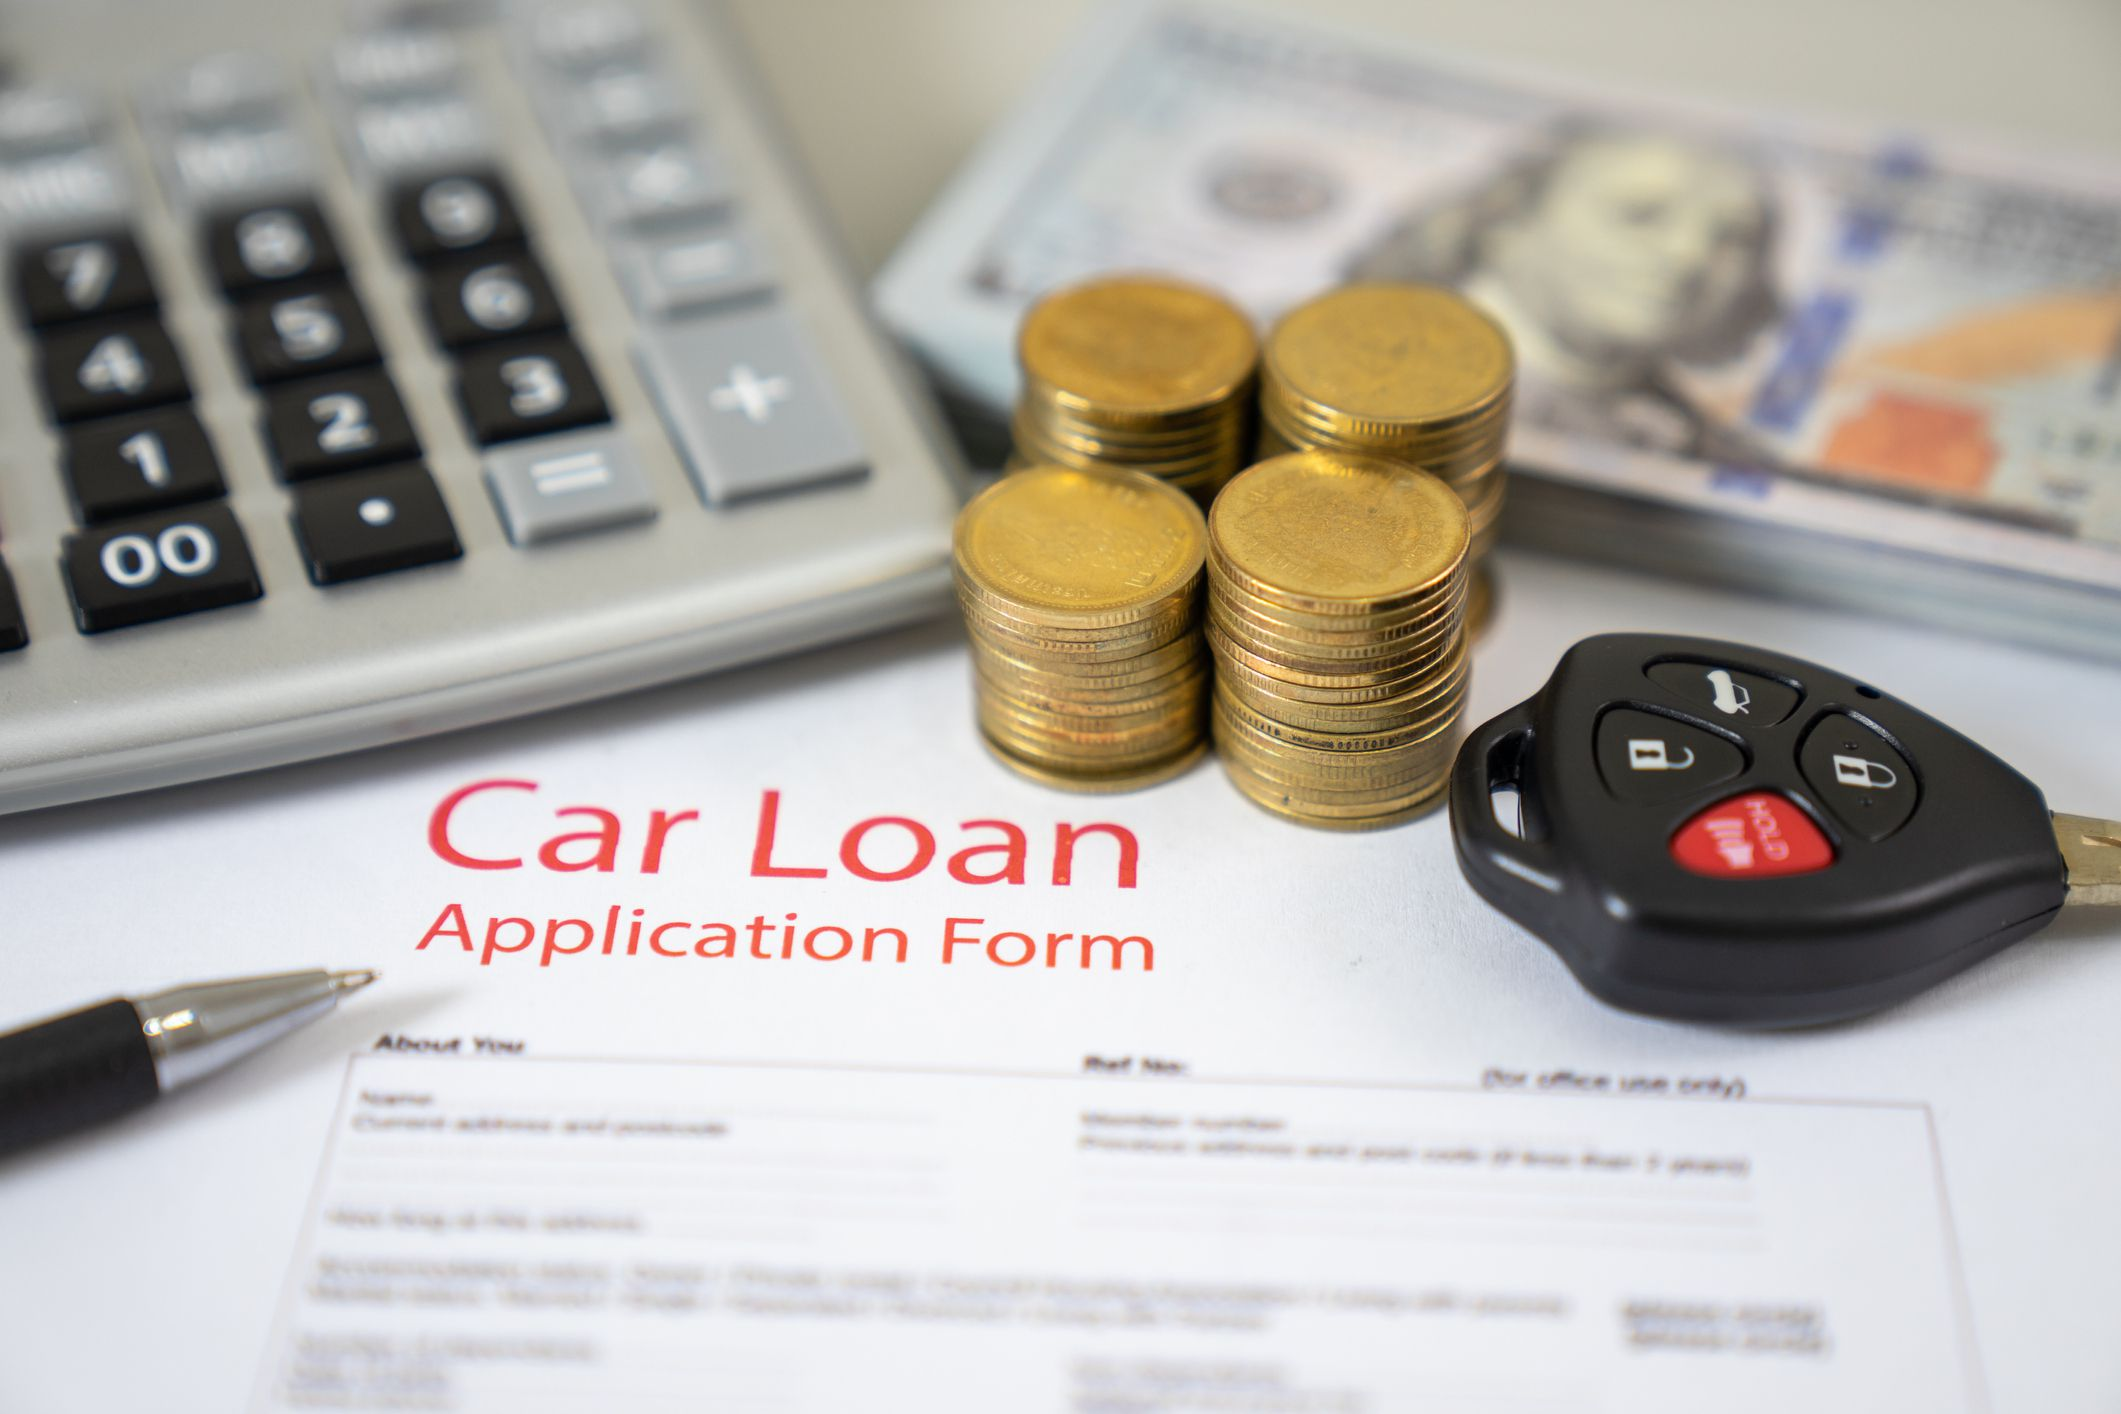 6 Ways To Cut The Cost Of Your Car Loan